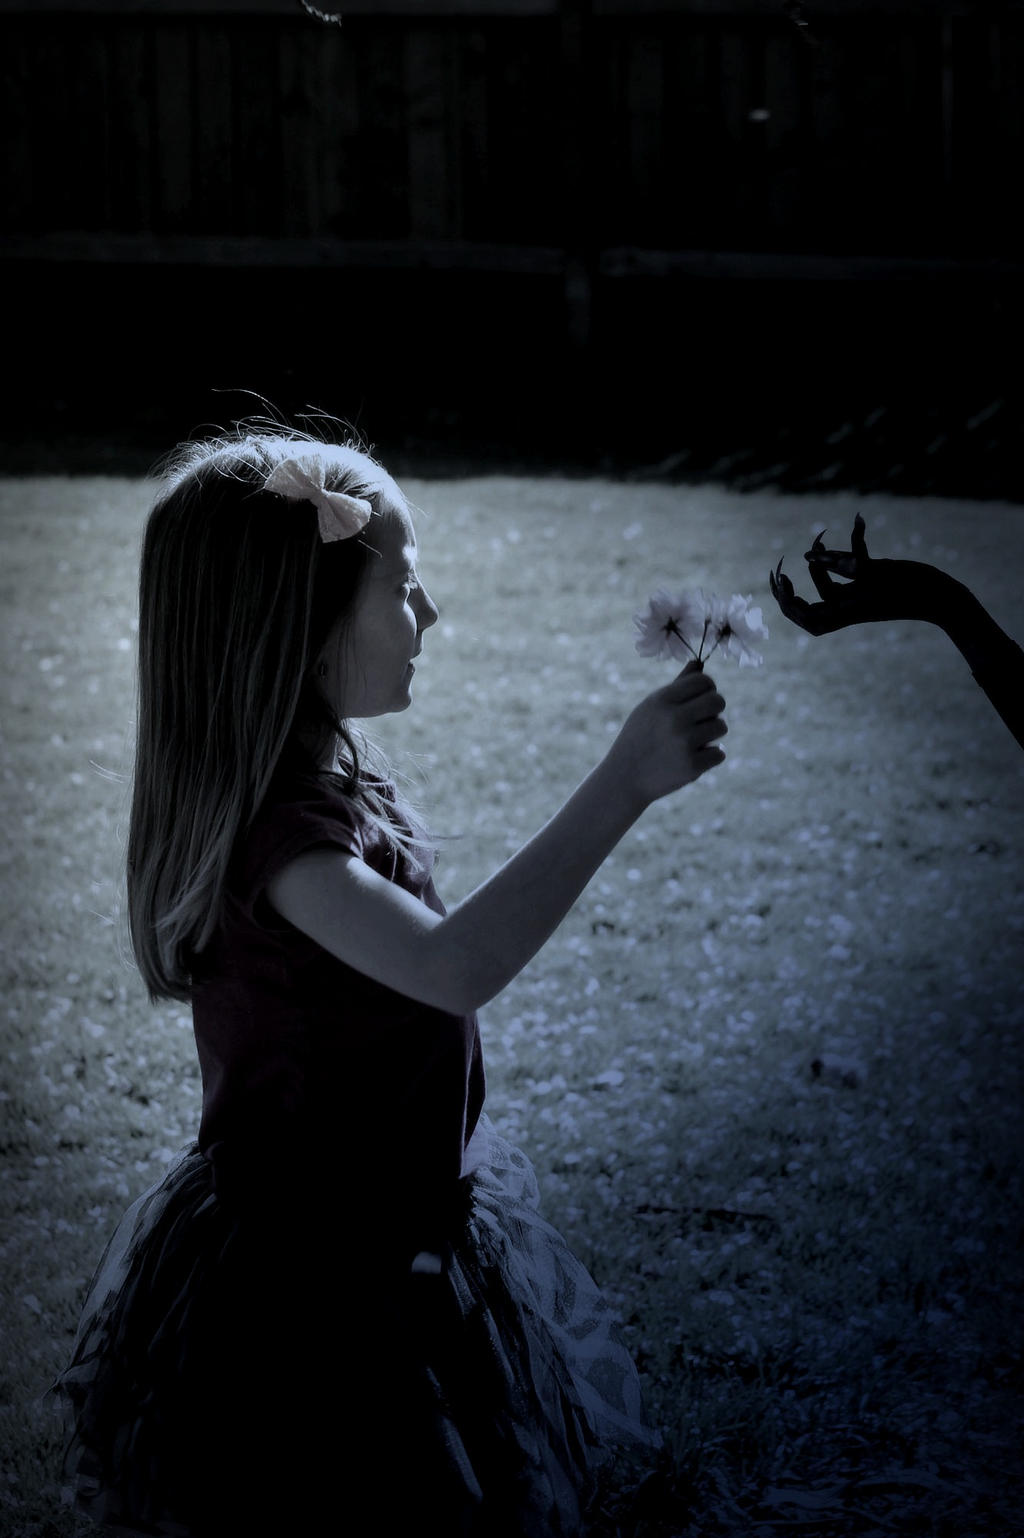 imaginary friend. by evilriverr